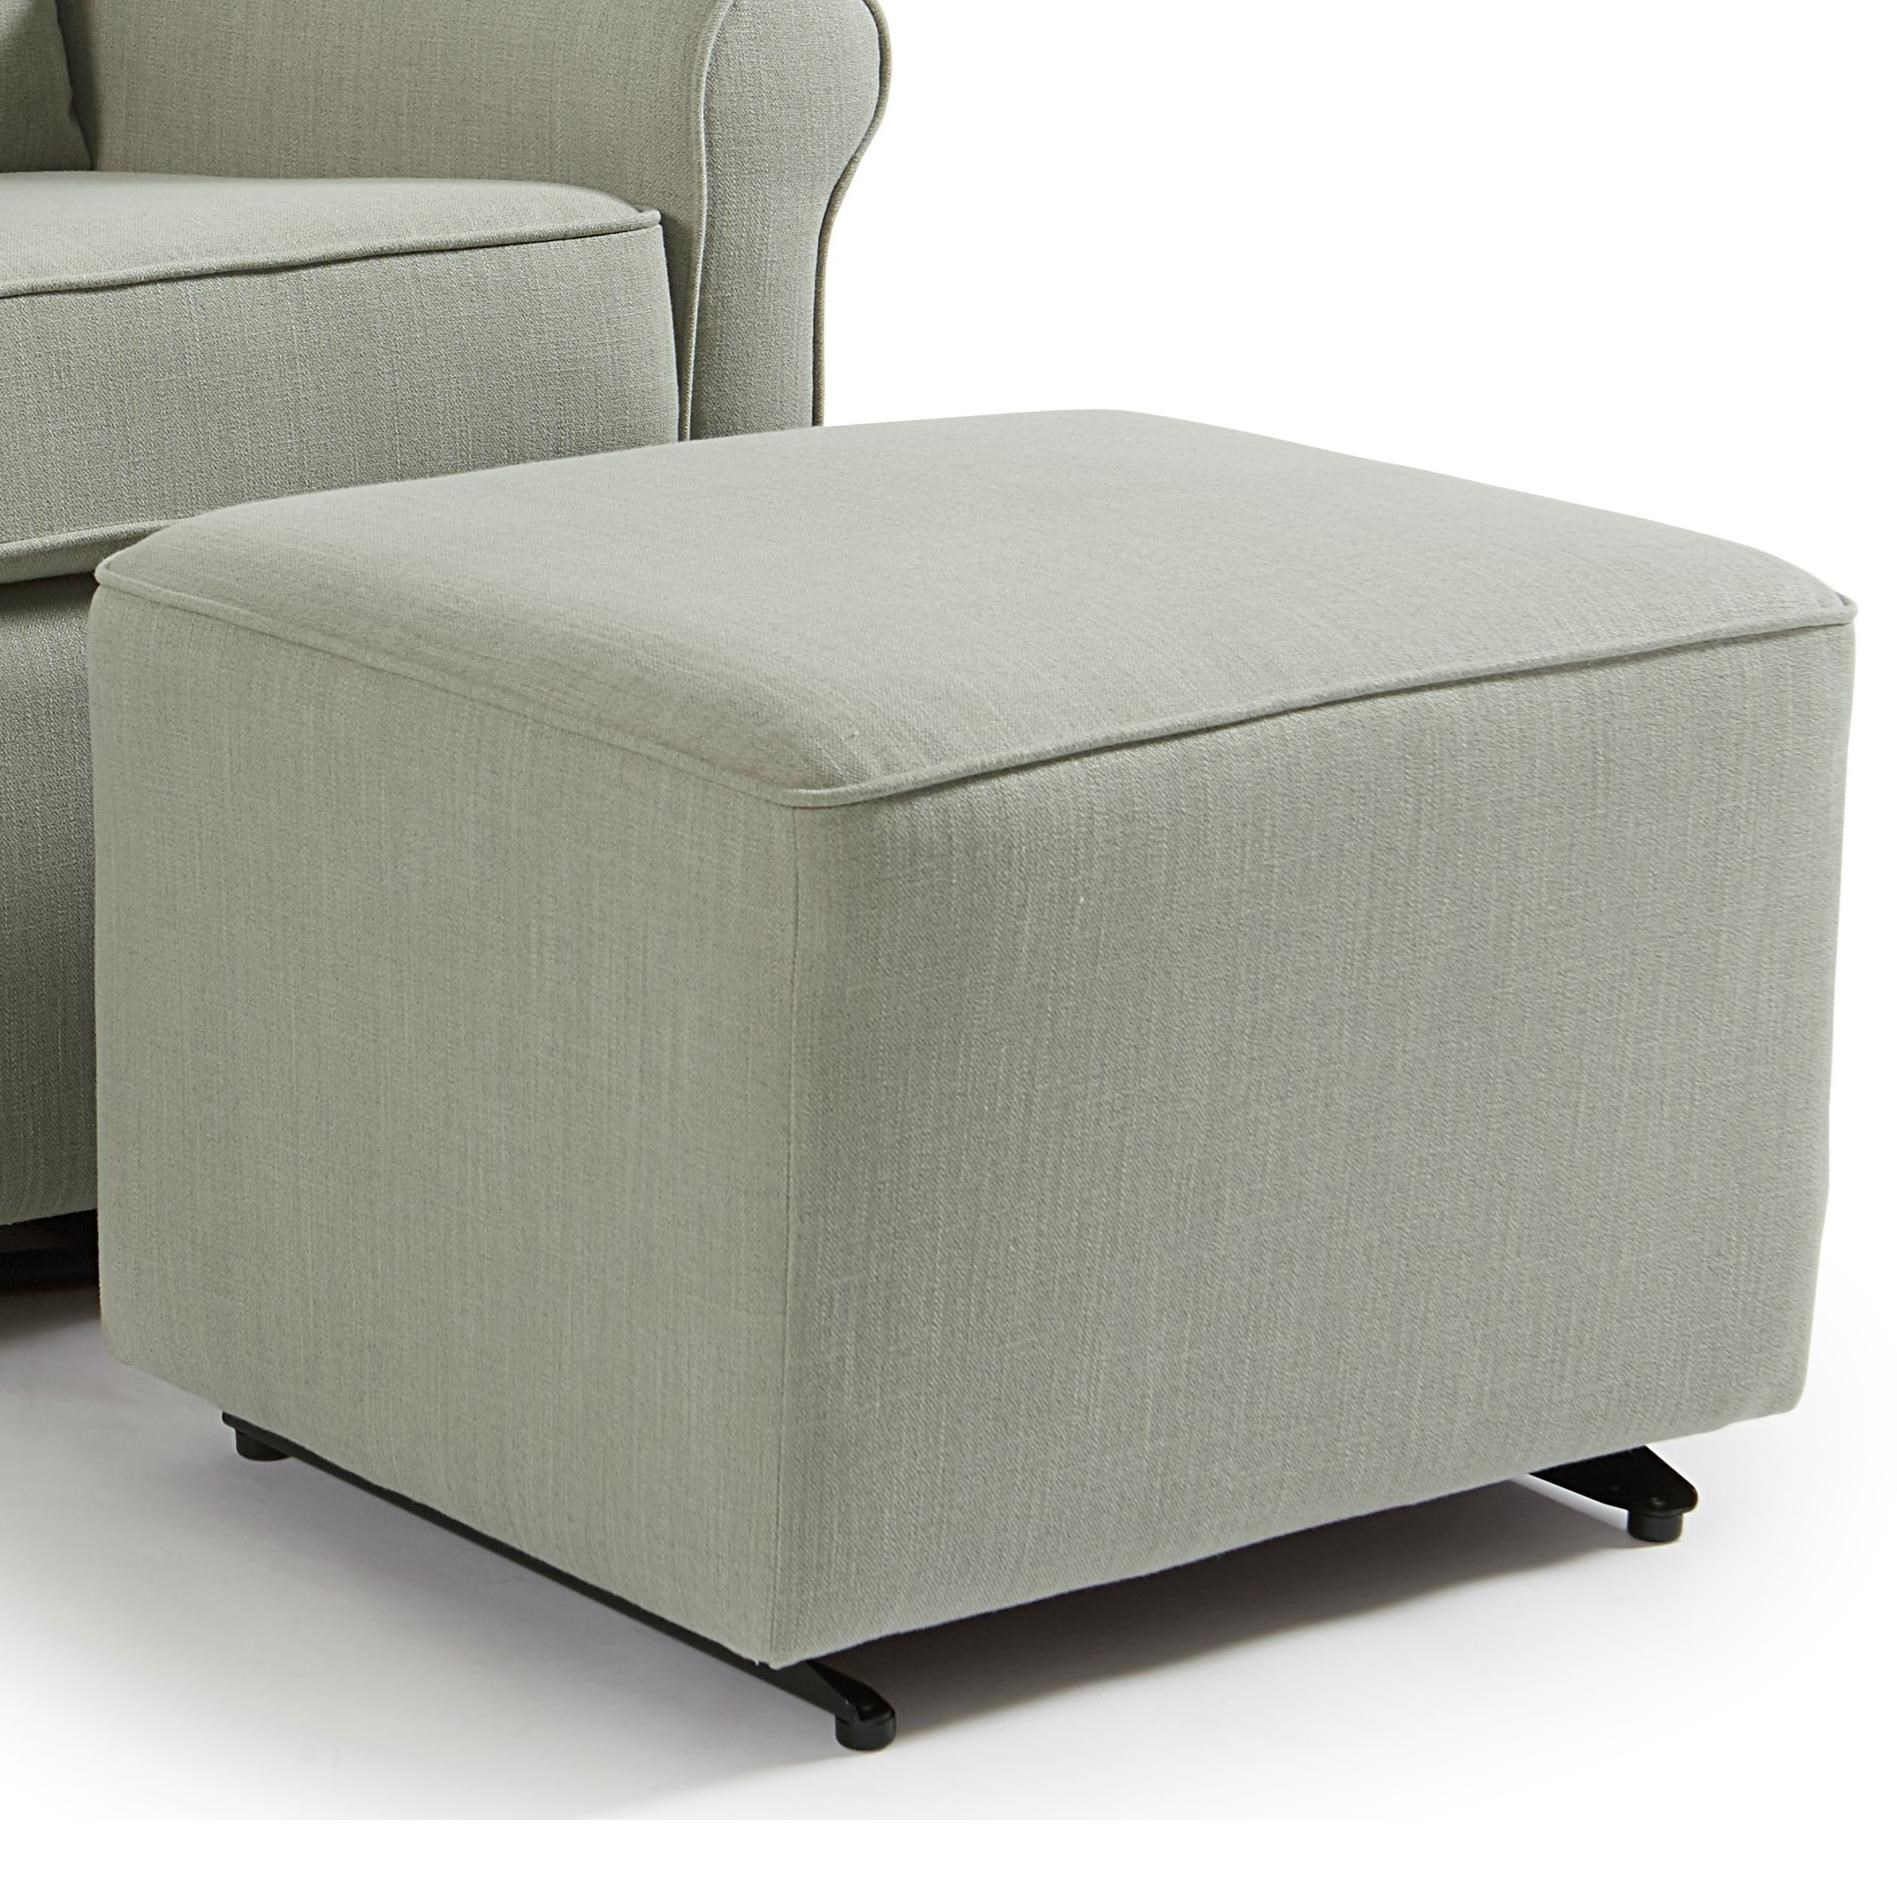 Kacey Ottoman W/ Glider Base by Best Home Furnishings at Novello Home Furnishings